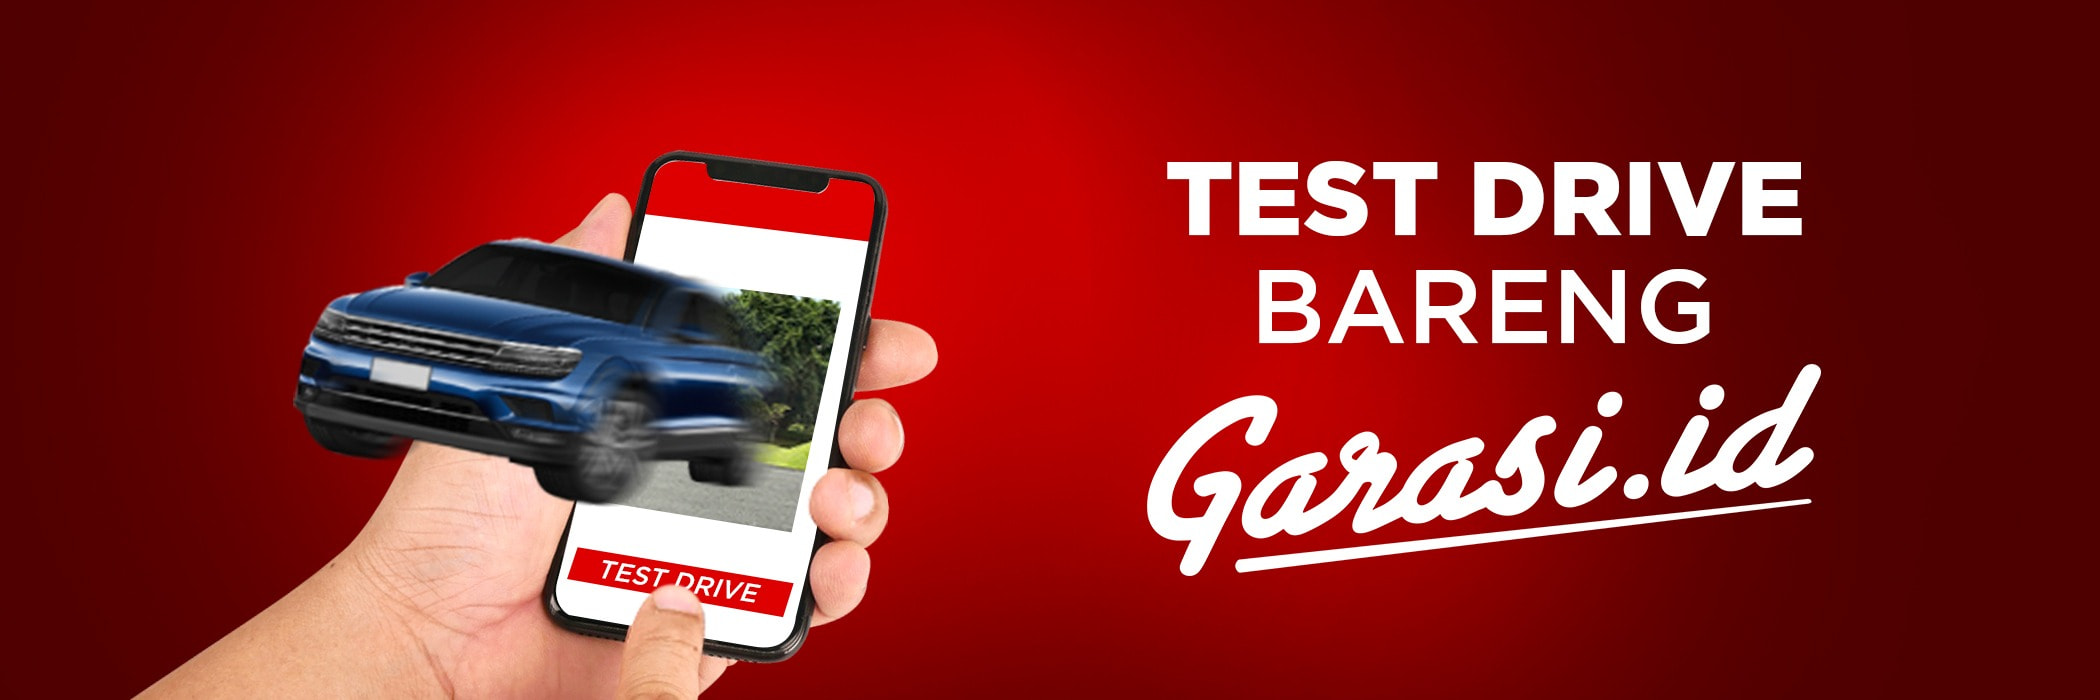 test drive landing page - Mobile